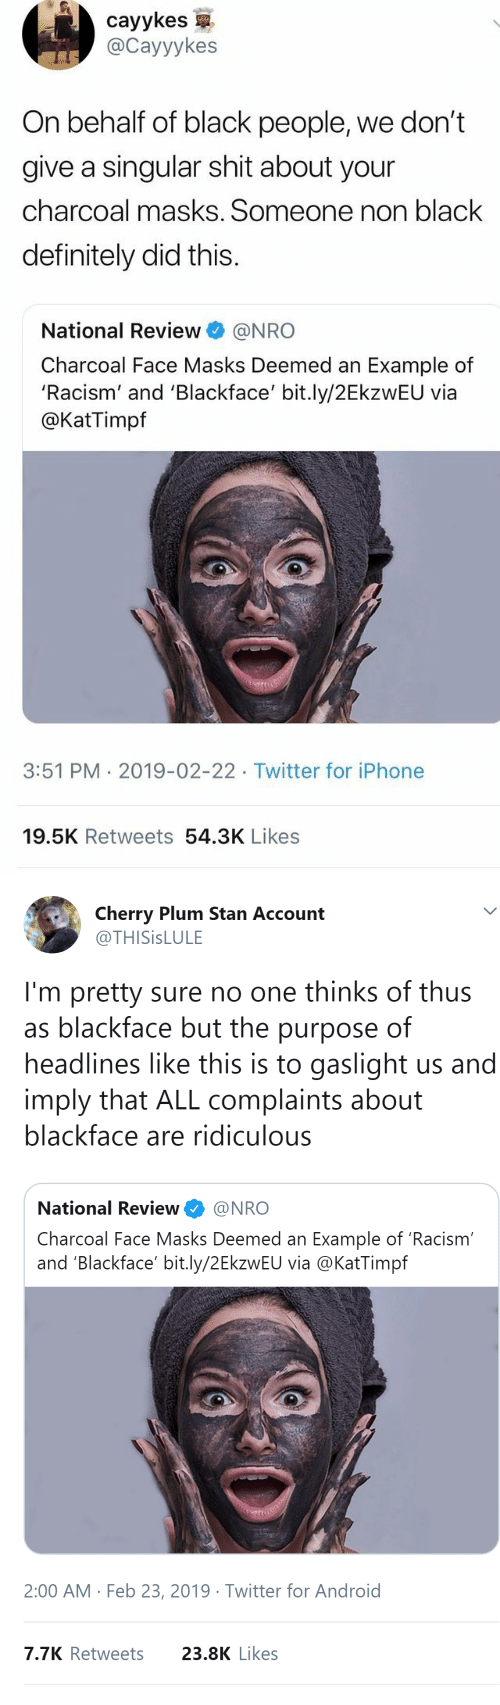 singular: cayykes  @Cayyykes  On behalf of black people, we don't  give a singular shit about your  charcoal masks. Someone non black  definitely did this.  National Review@NRO  Charcoal Face Masks Deemed an Example of  'Racism' and 'Blackface' bit.ly/2EkzwEU via  @KatTimpf  3:51 PM 2019-02-22 Twitter for iPhone  19.5K Retweets 54.3K Likes   Cherry Plum Stan Account  @THISİSLULE  I'm pretty sure no one thinks of thus  as blackface but the purpose of  headlines like this is to gaslight us and  imply that ALL complaints about  blackface are ridiculous  National Review@NRO  Charcoal Face Masks Deemed an Example of 'Racism  and 'Blackface' bit.ly/2EkzwEU via @KatTimpf  2:00 AM Feb 23, 2019 Twitter for Android  7.7K Retweets  23.8K Likes